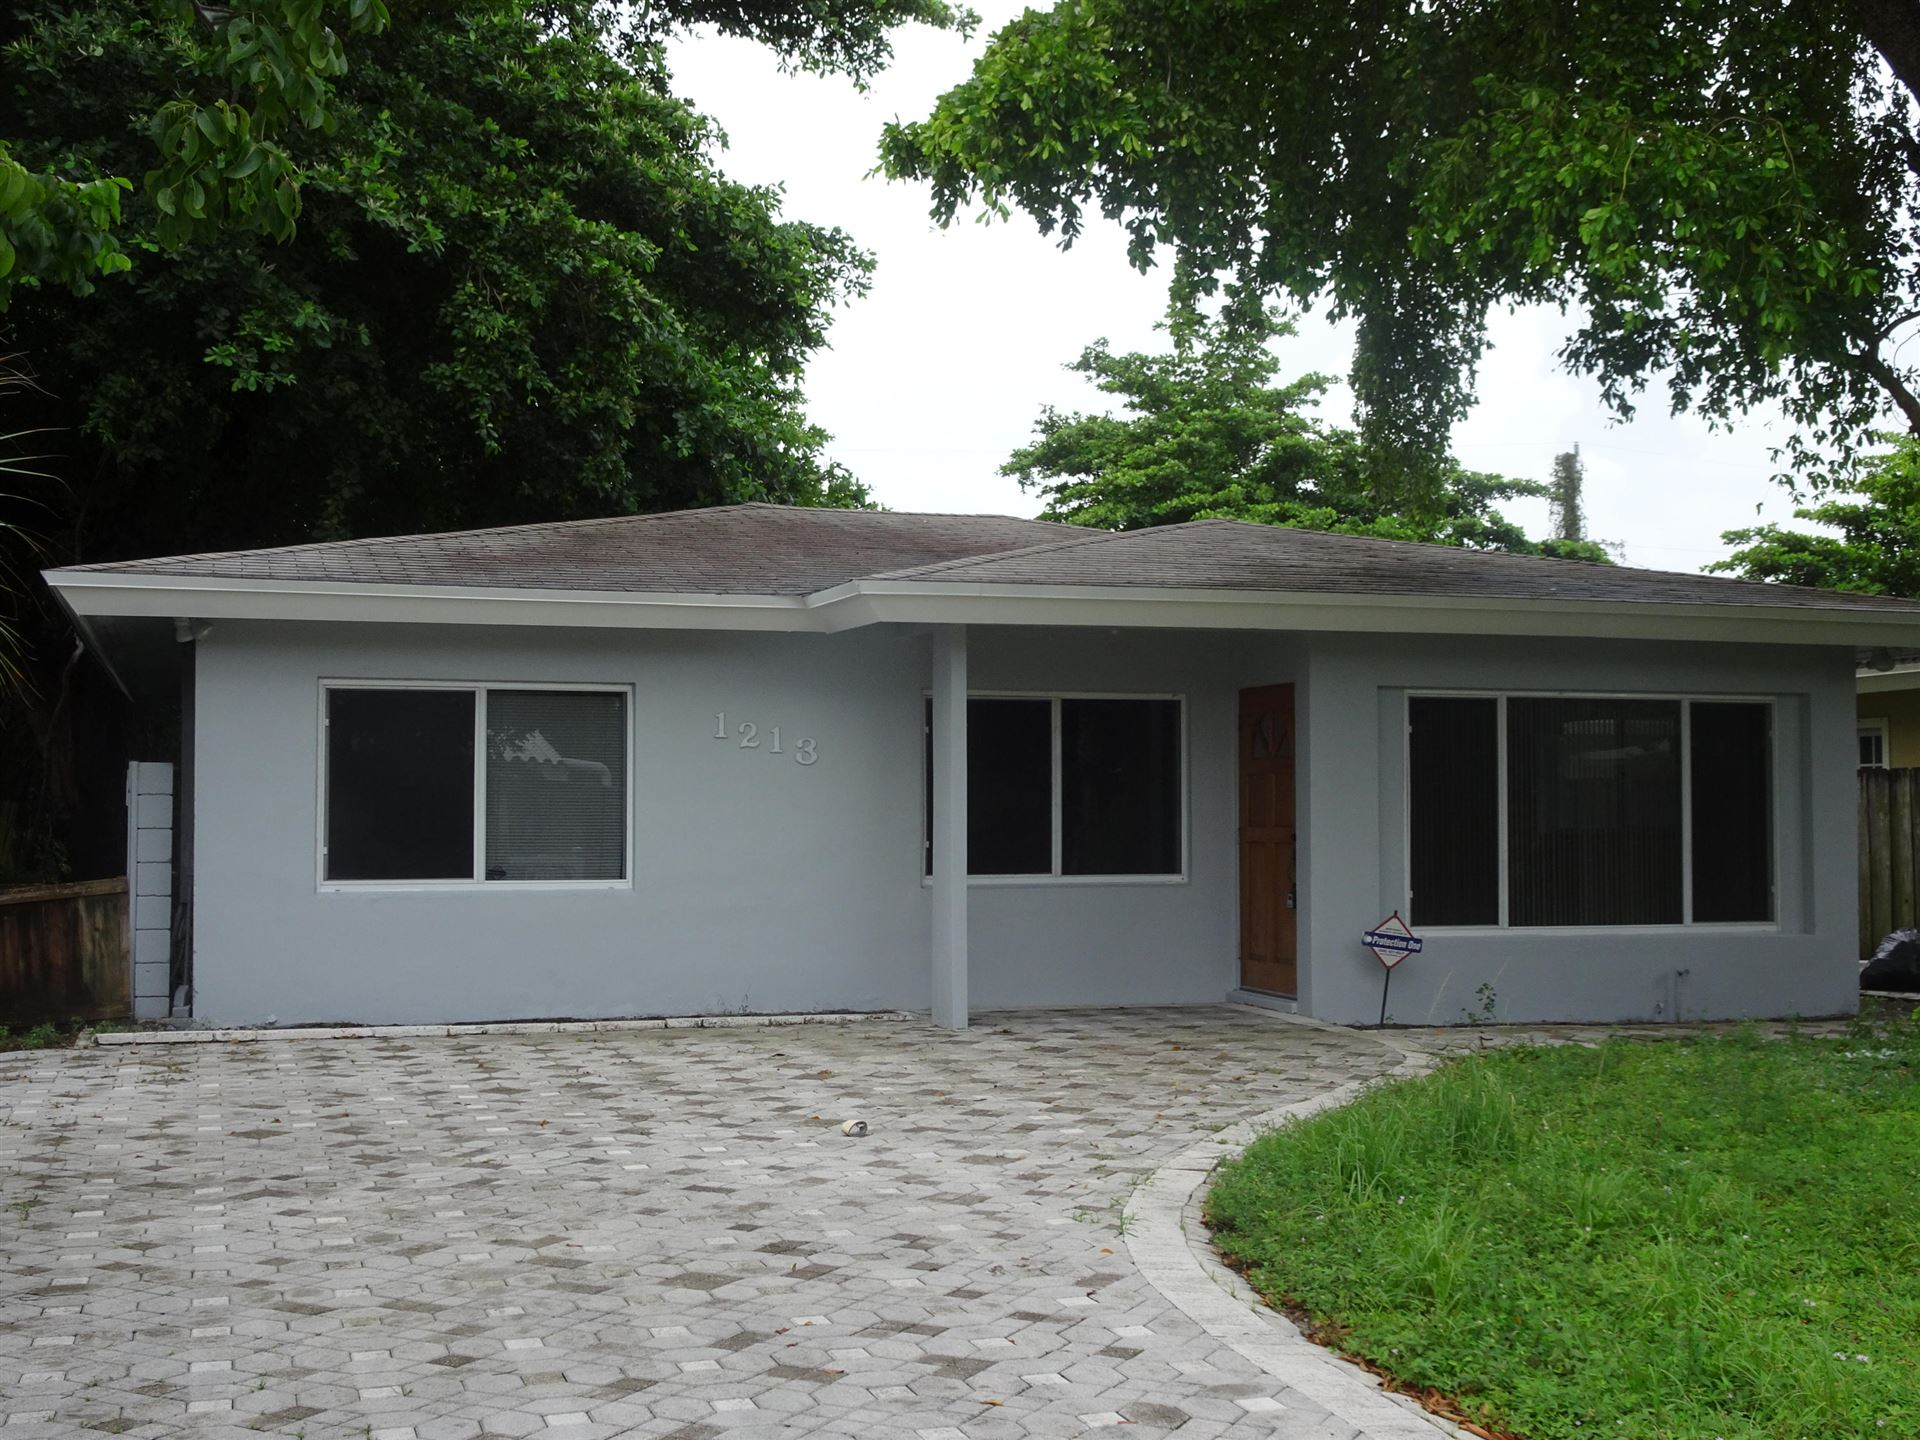 1213 NW 7th Avenue, Fort Lauderdale, FL 33311 - #: RX-10645424